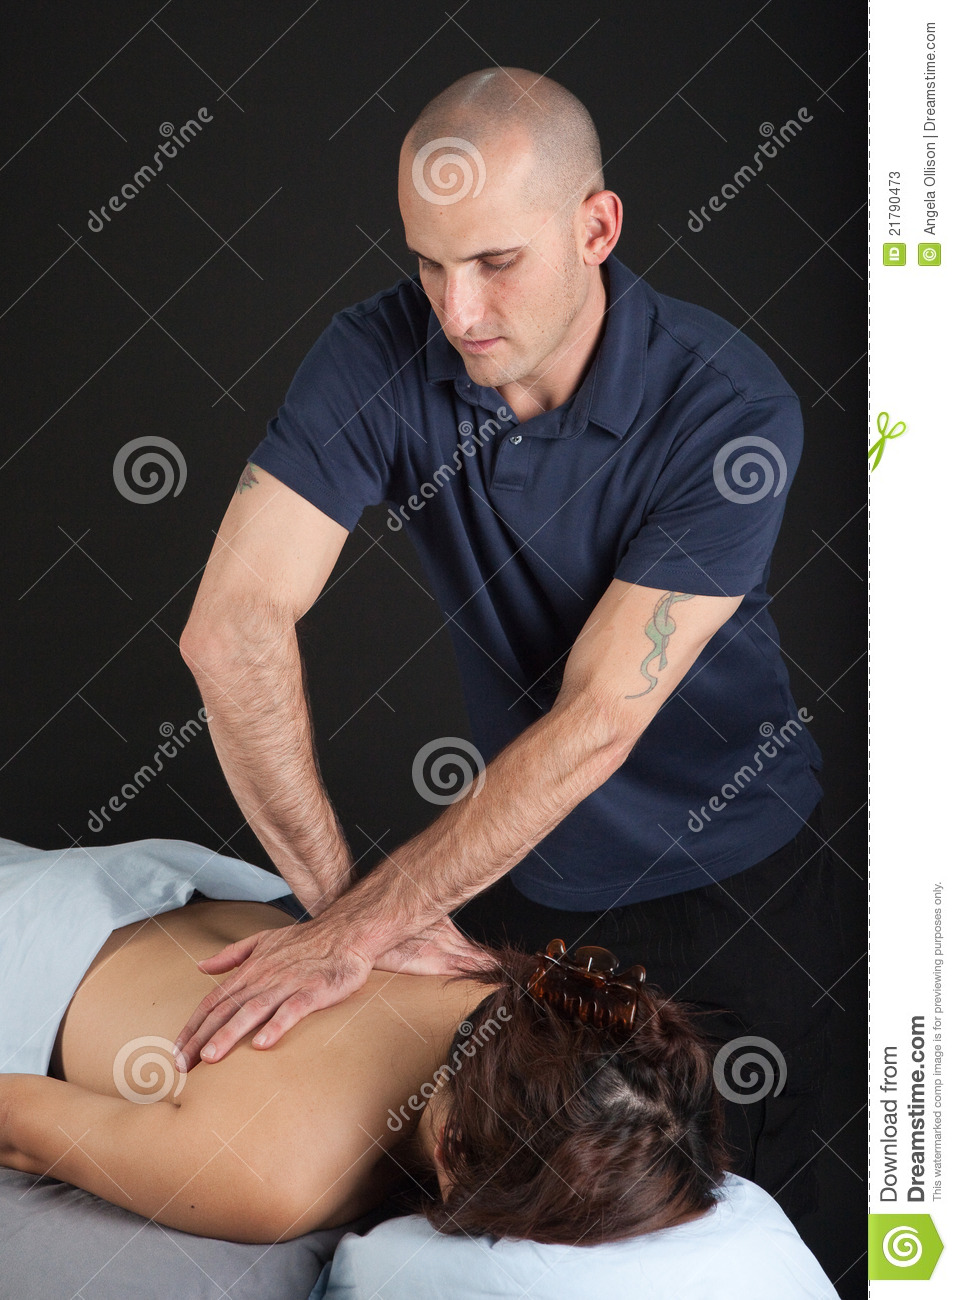 Women Giving Men Massages